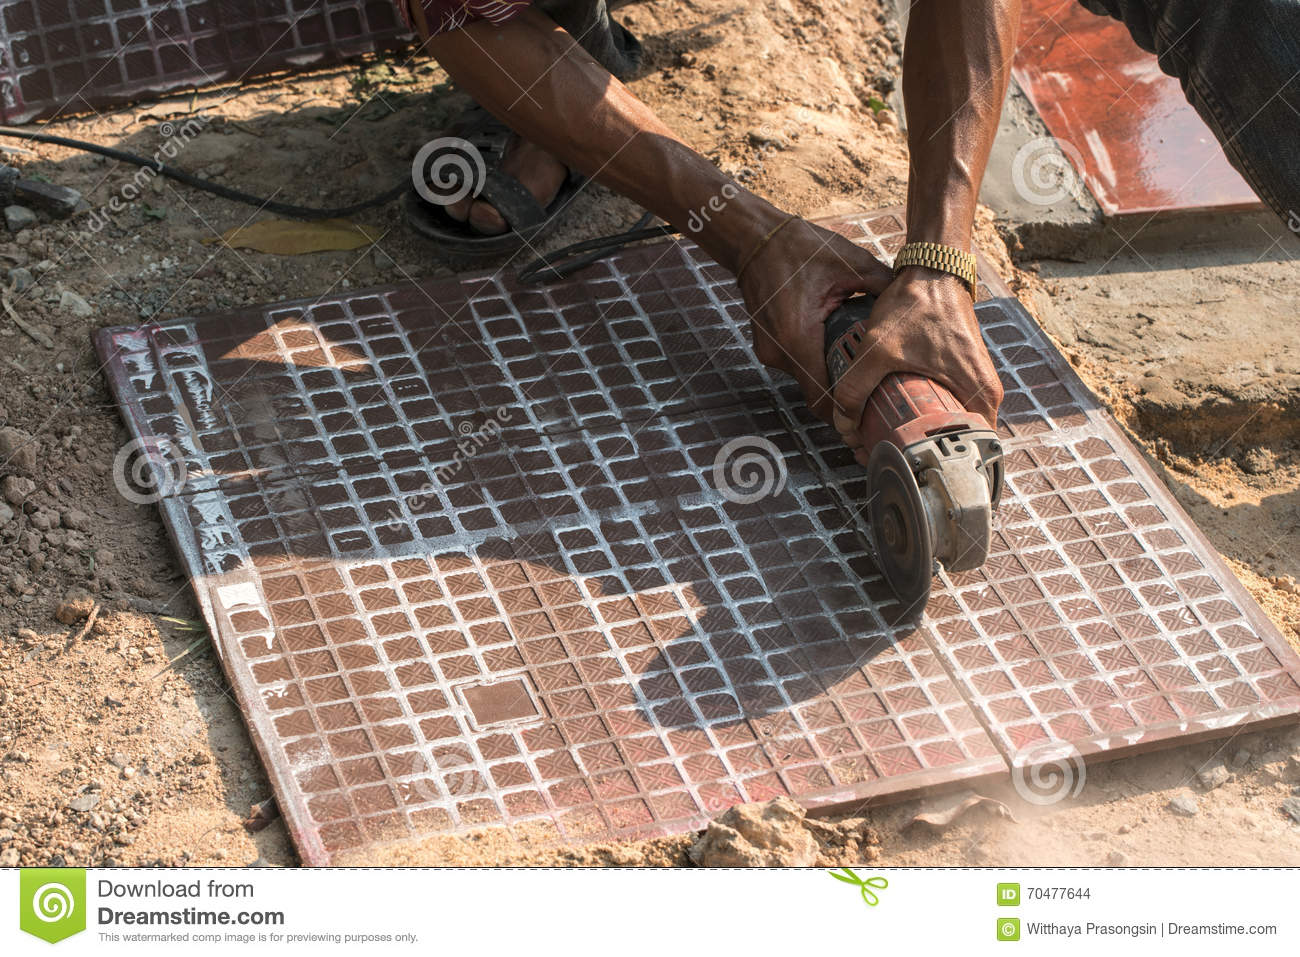 Cutting ceramic tiles with angle grinder gallery tile flooring cutting ceramic tile with an angle grinder image collections cutting ceramic tiles with angle grinder images doublecrazyfo Gallery